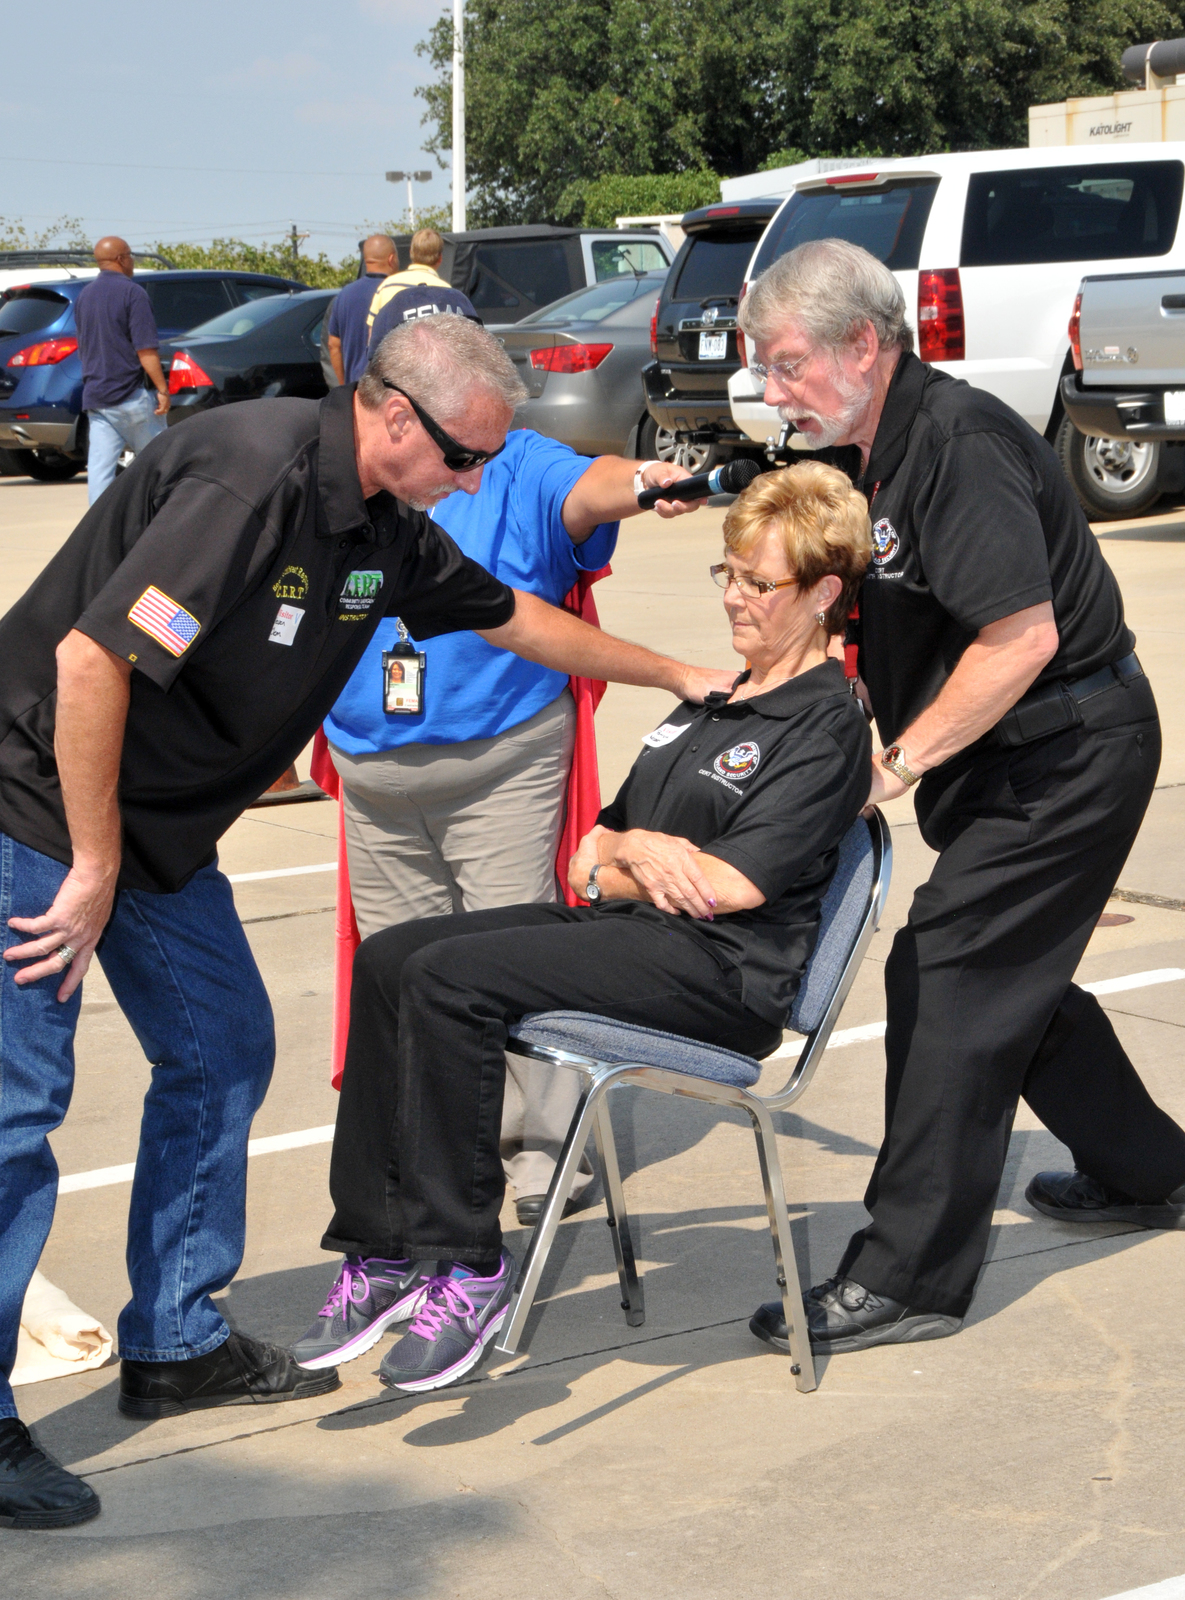 Denton, Texas, Sep. 12, 2013 -- Community Emergency Response Team (CERT) instructors Steven Clem (left) Patricia Weaver (center) and Gordy VanSteenBerg (right) demonstrate the proper technique for carrying a victim on a chair. The demonstration was part of a National Preparedness Month event held at FEMA Region VI. FEMA/Earl Armstrong